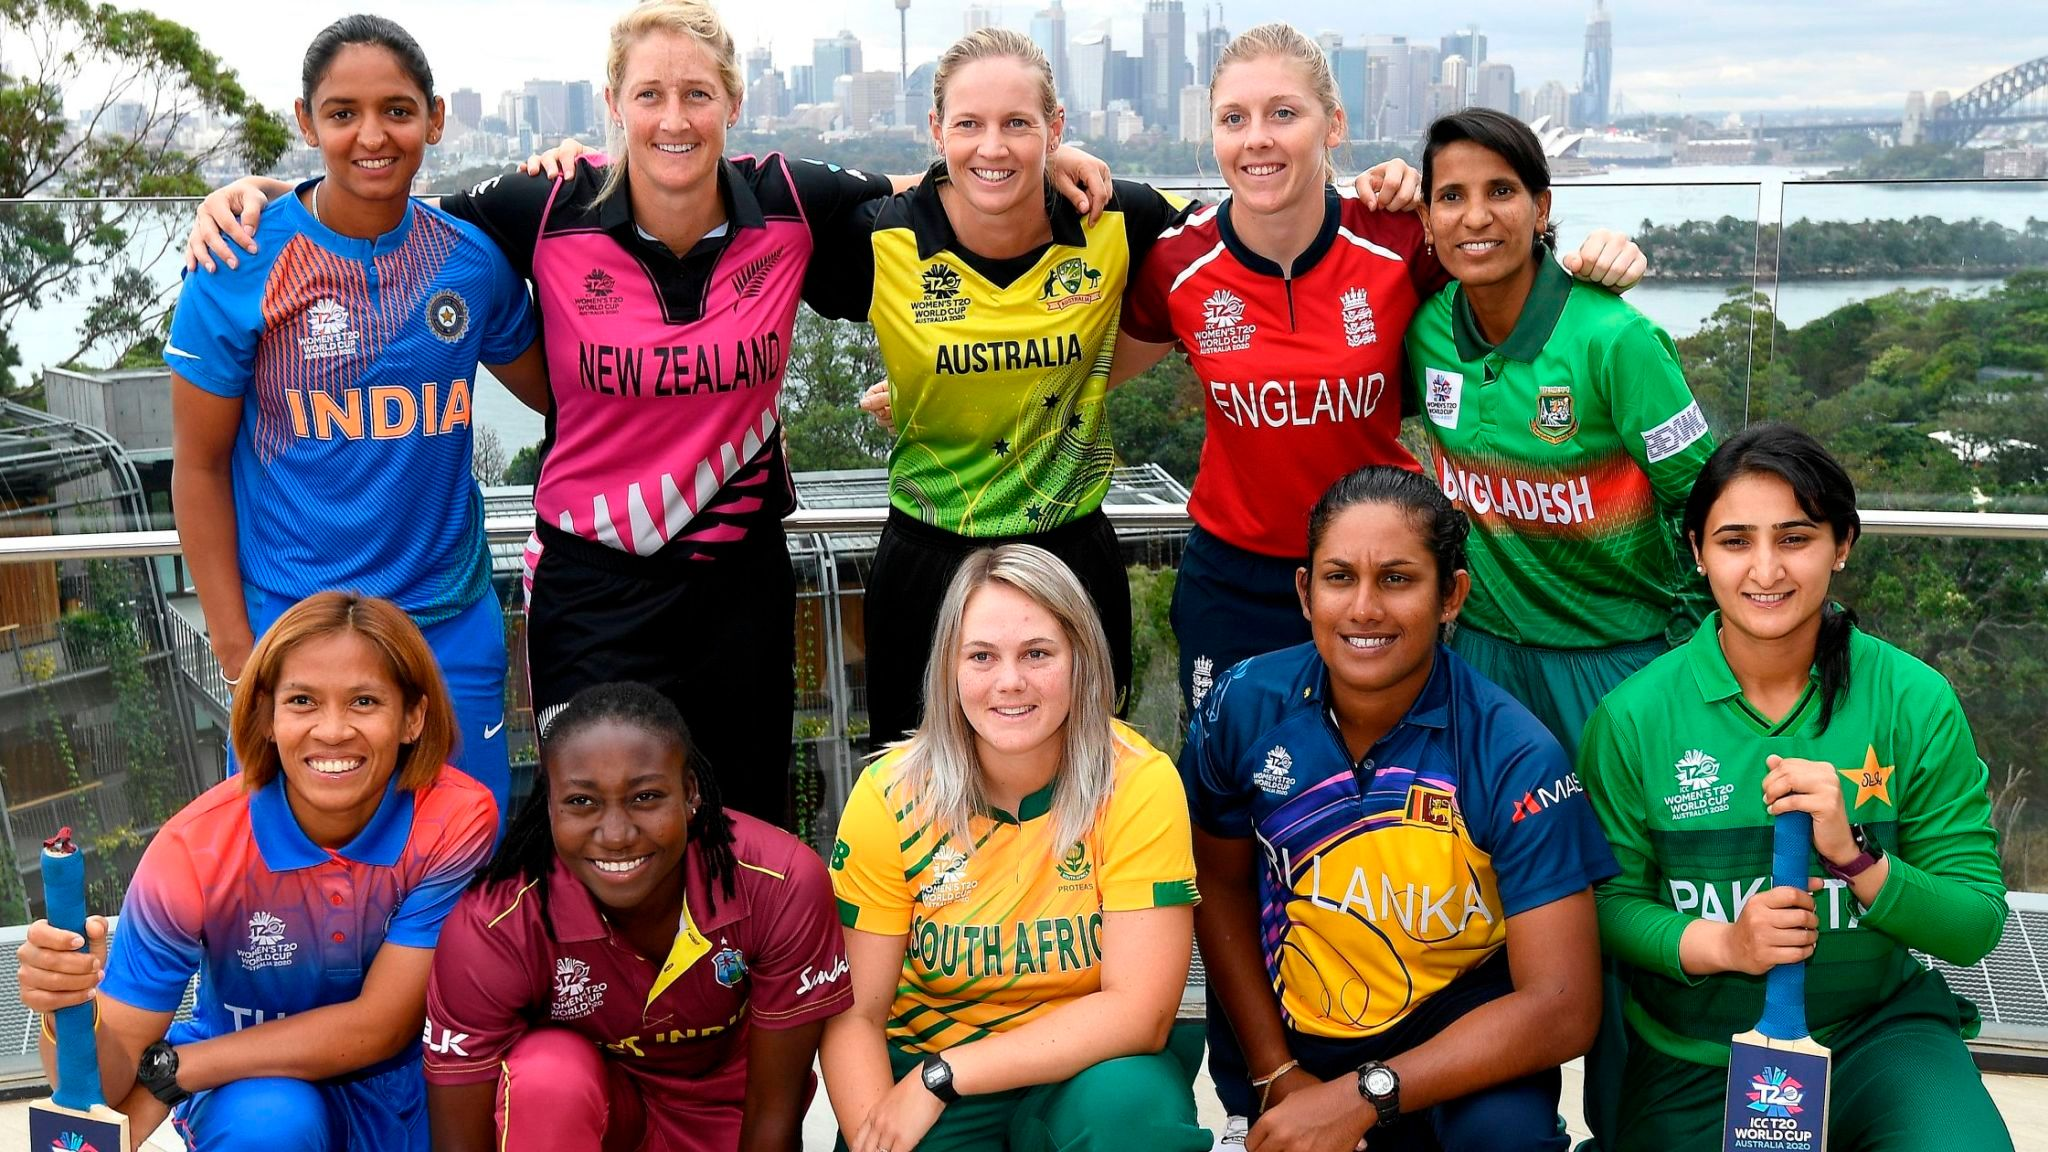 The captains pose for the T20 World Cup | Image Credits: Sky Sports